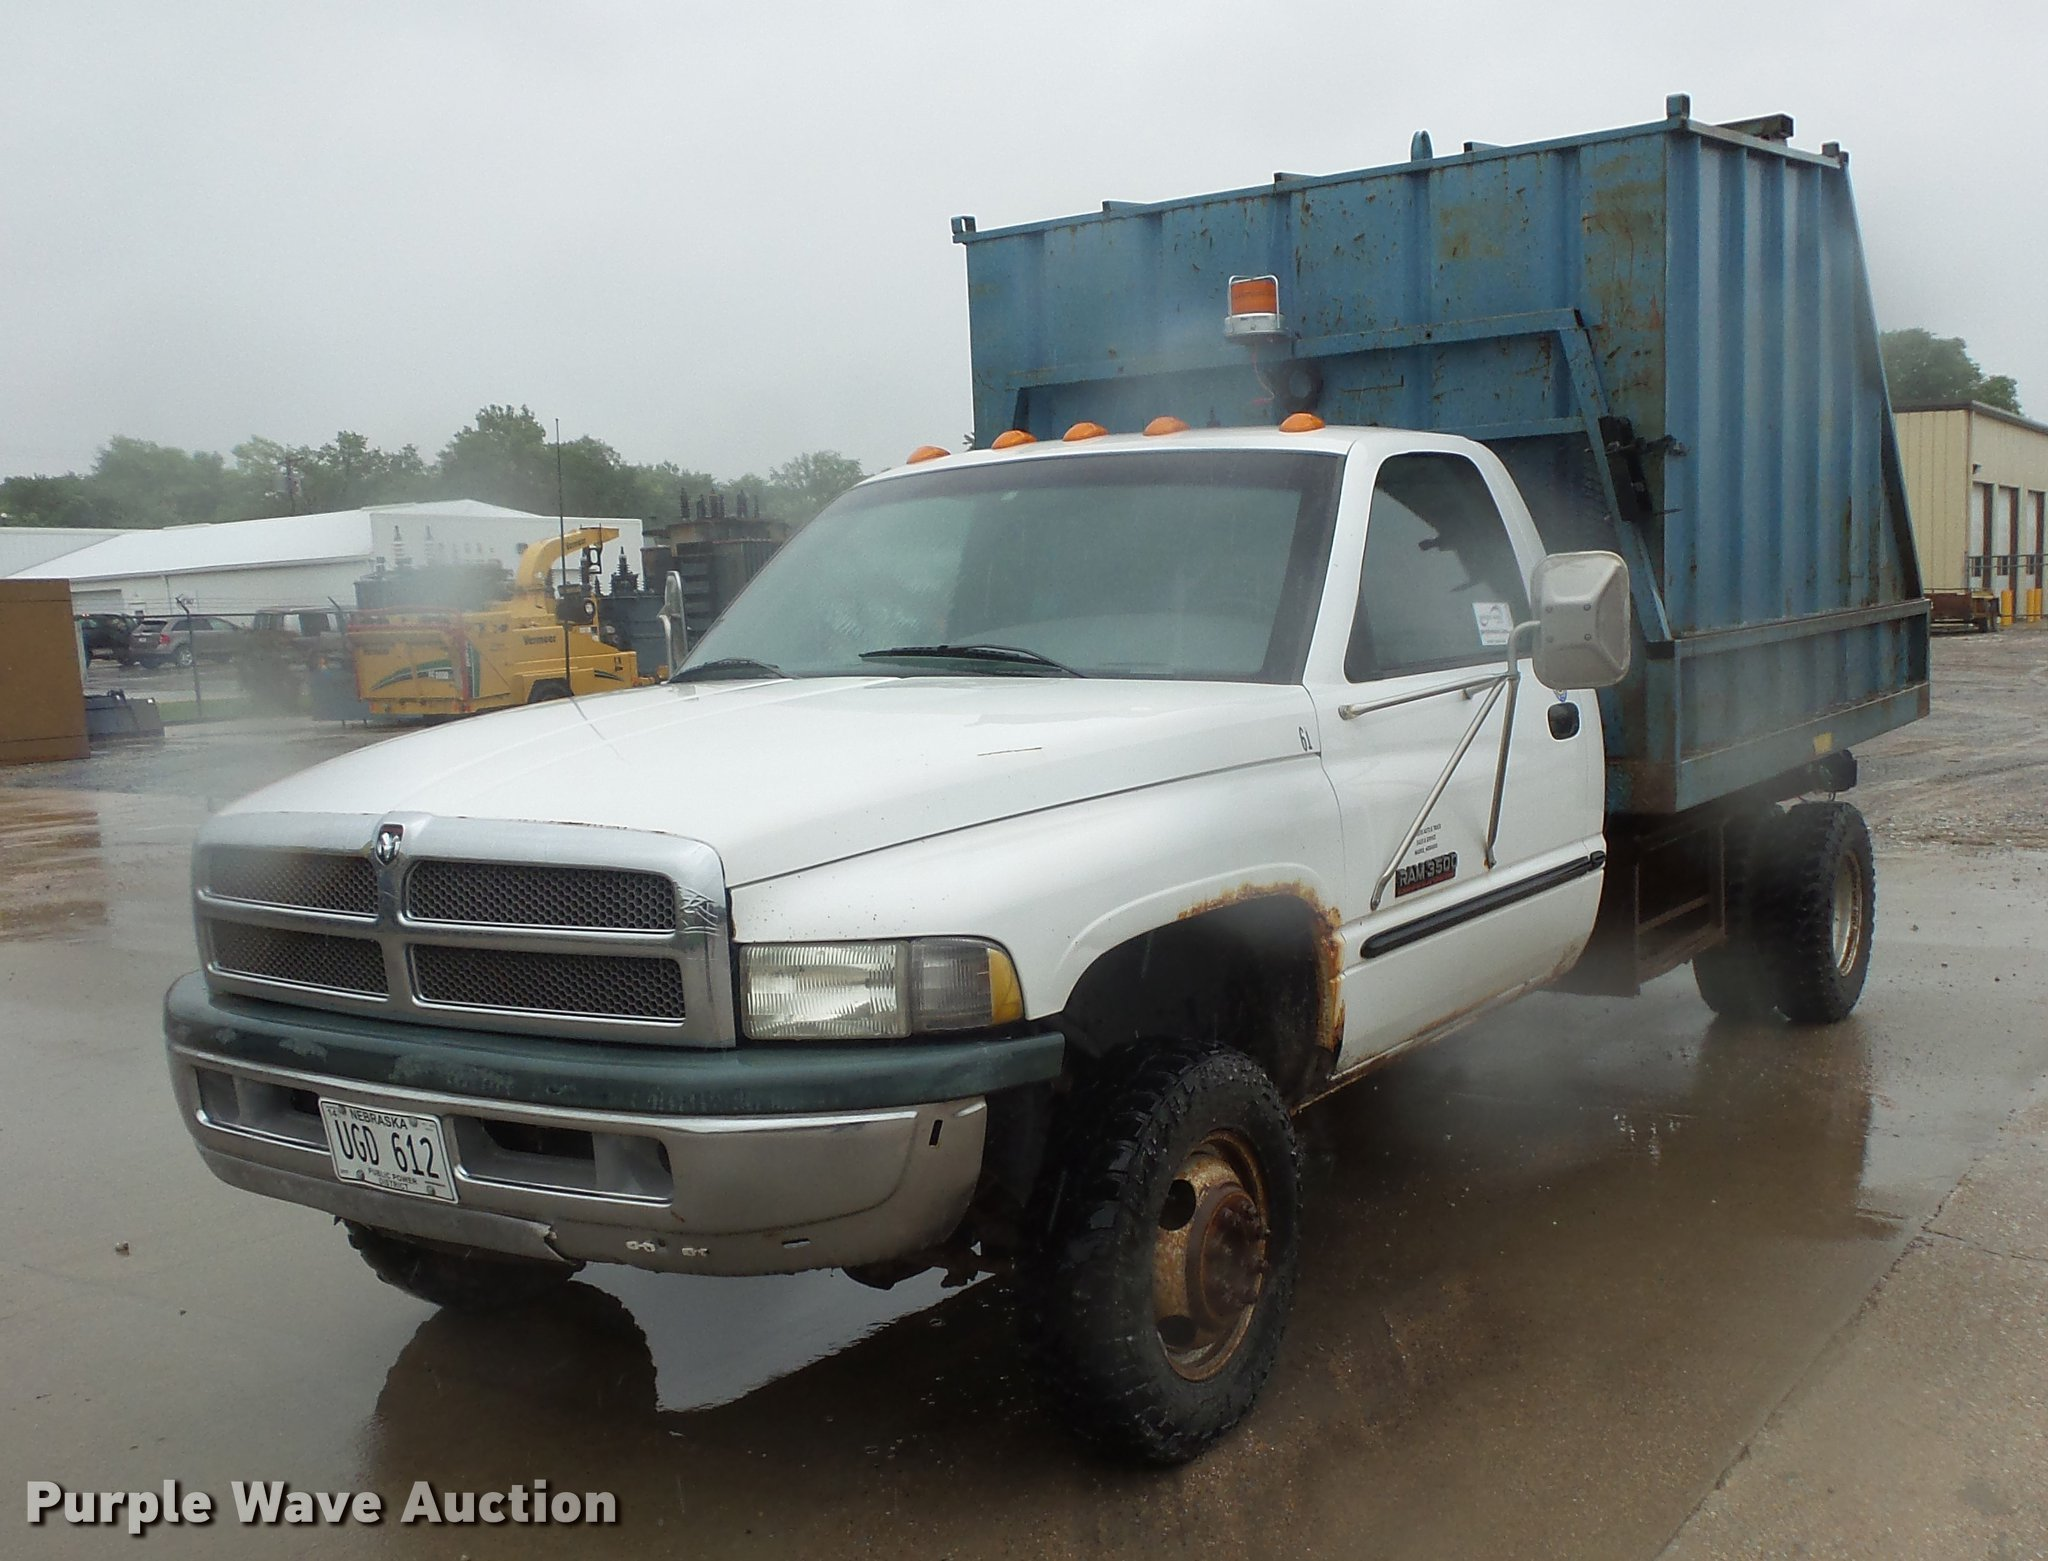 1999 Dodge Ram 3500 Dump Bed Pickup Truck Item Dd4276 So